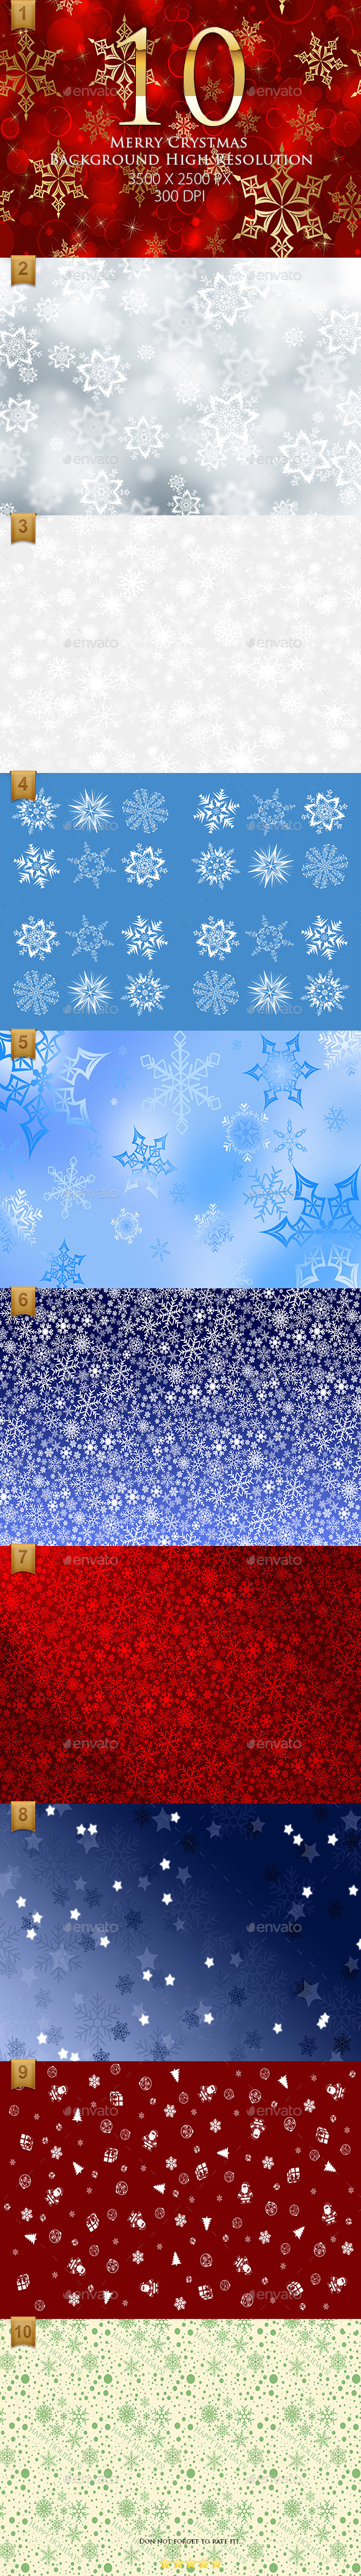 10 Merry Christmas Background High Resolution Part1 - Abstract Backgrounds